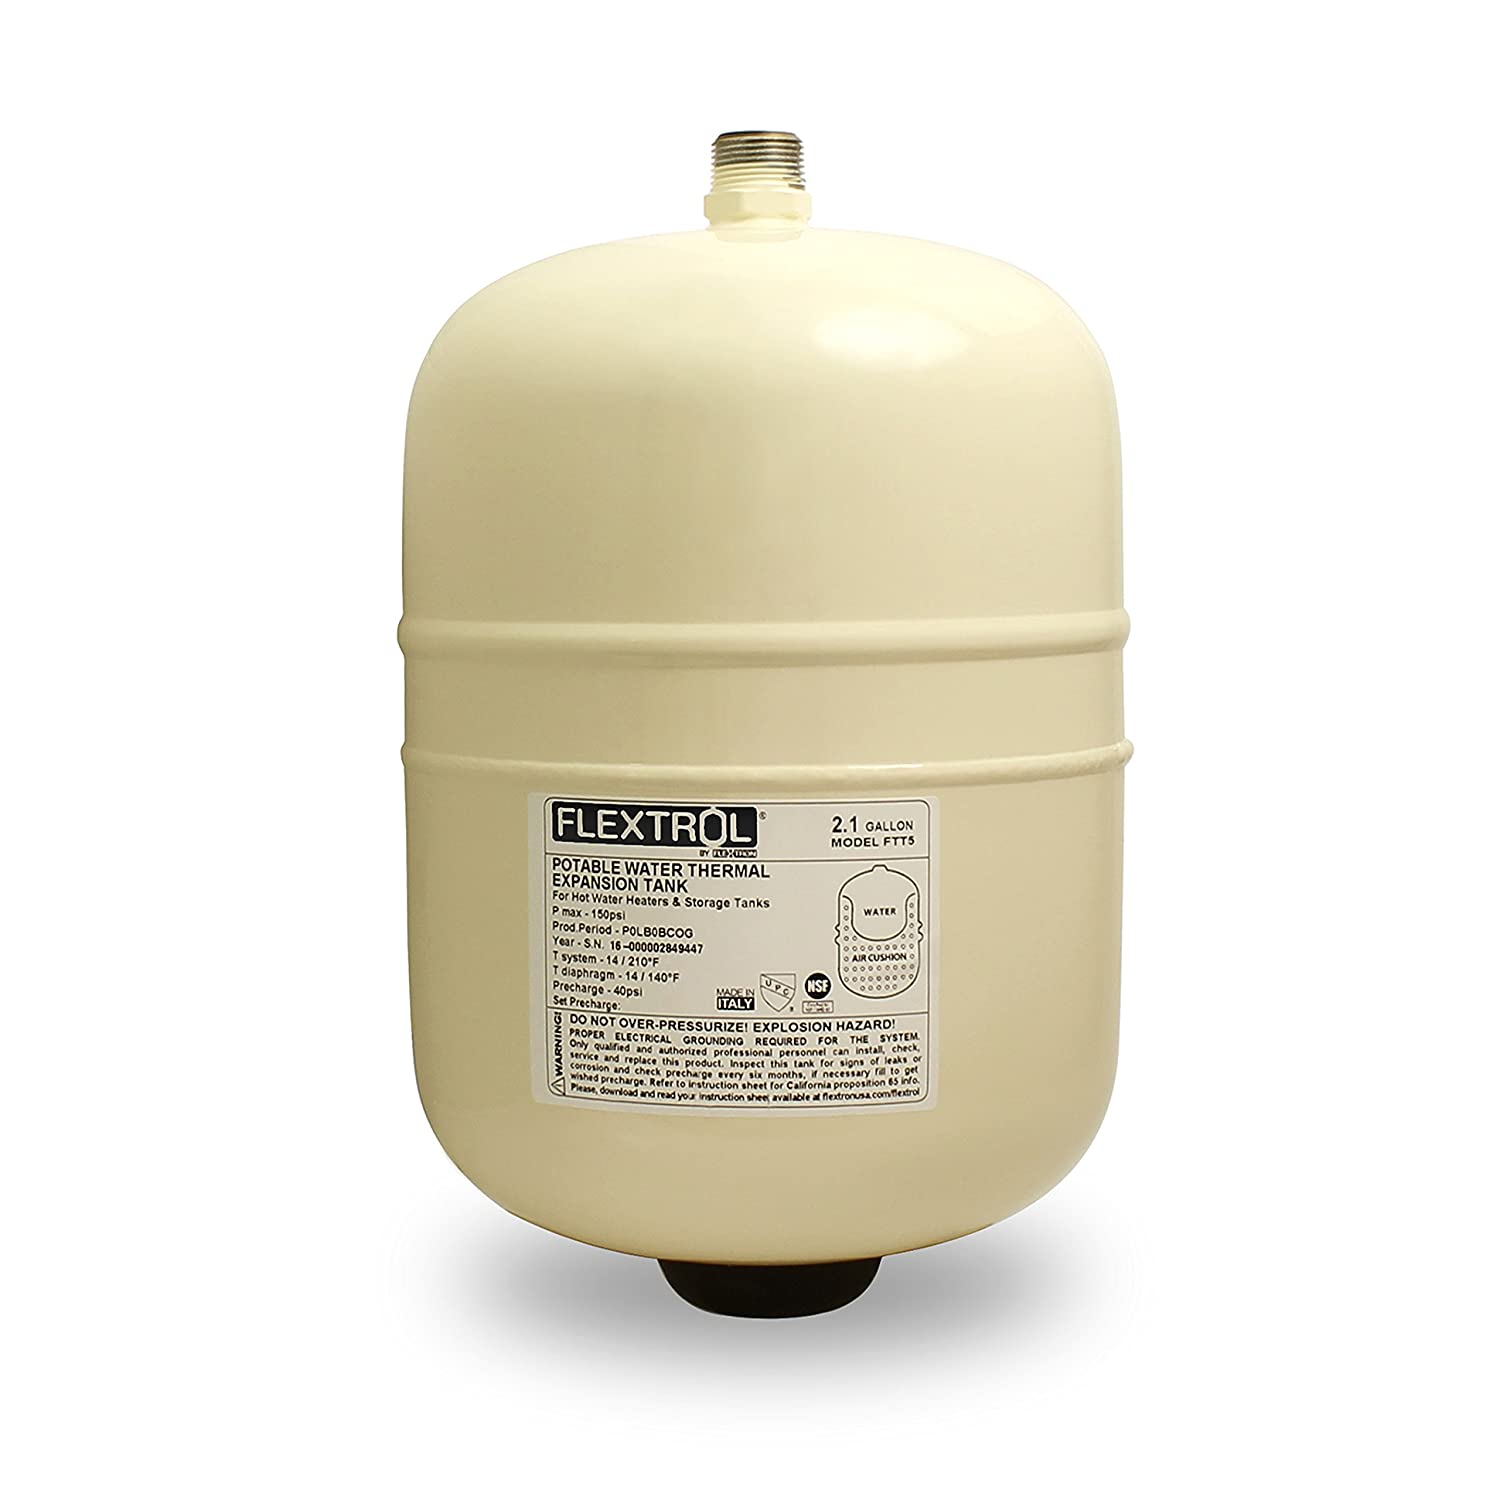 flextrol thermal expansion tanks for hot water heaters 2 1 gallons